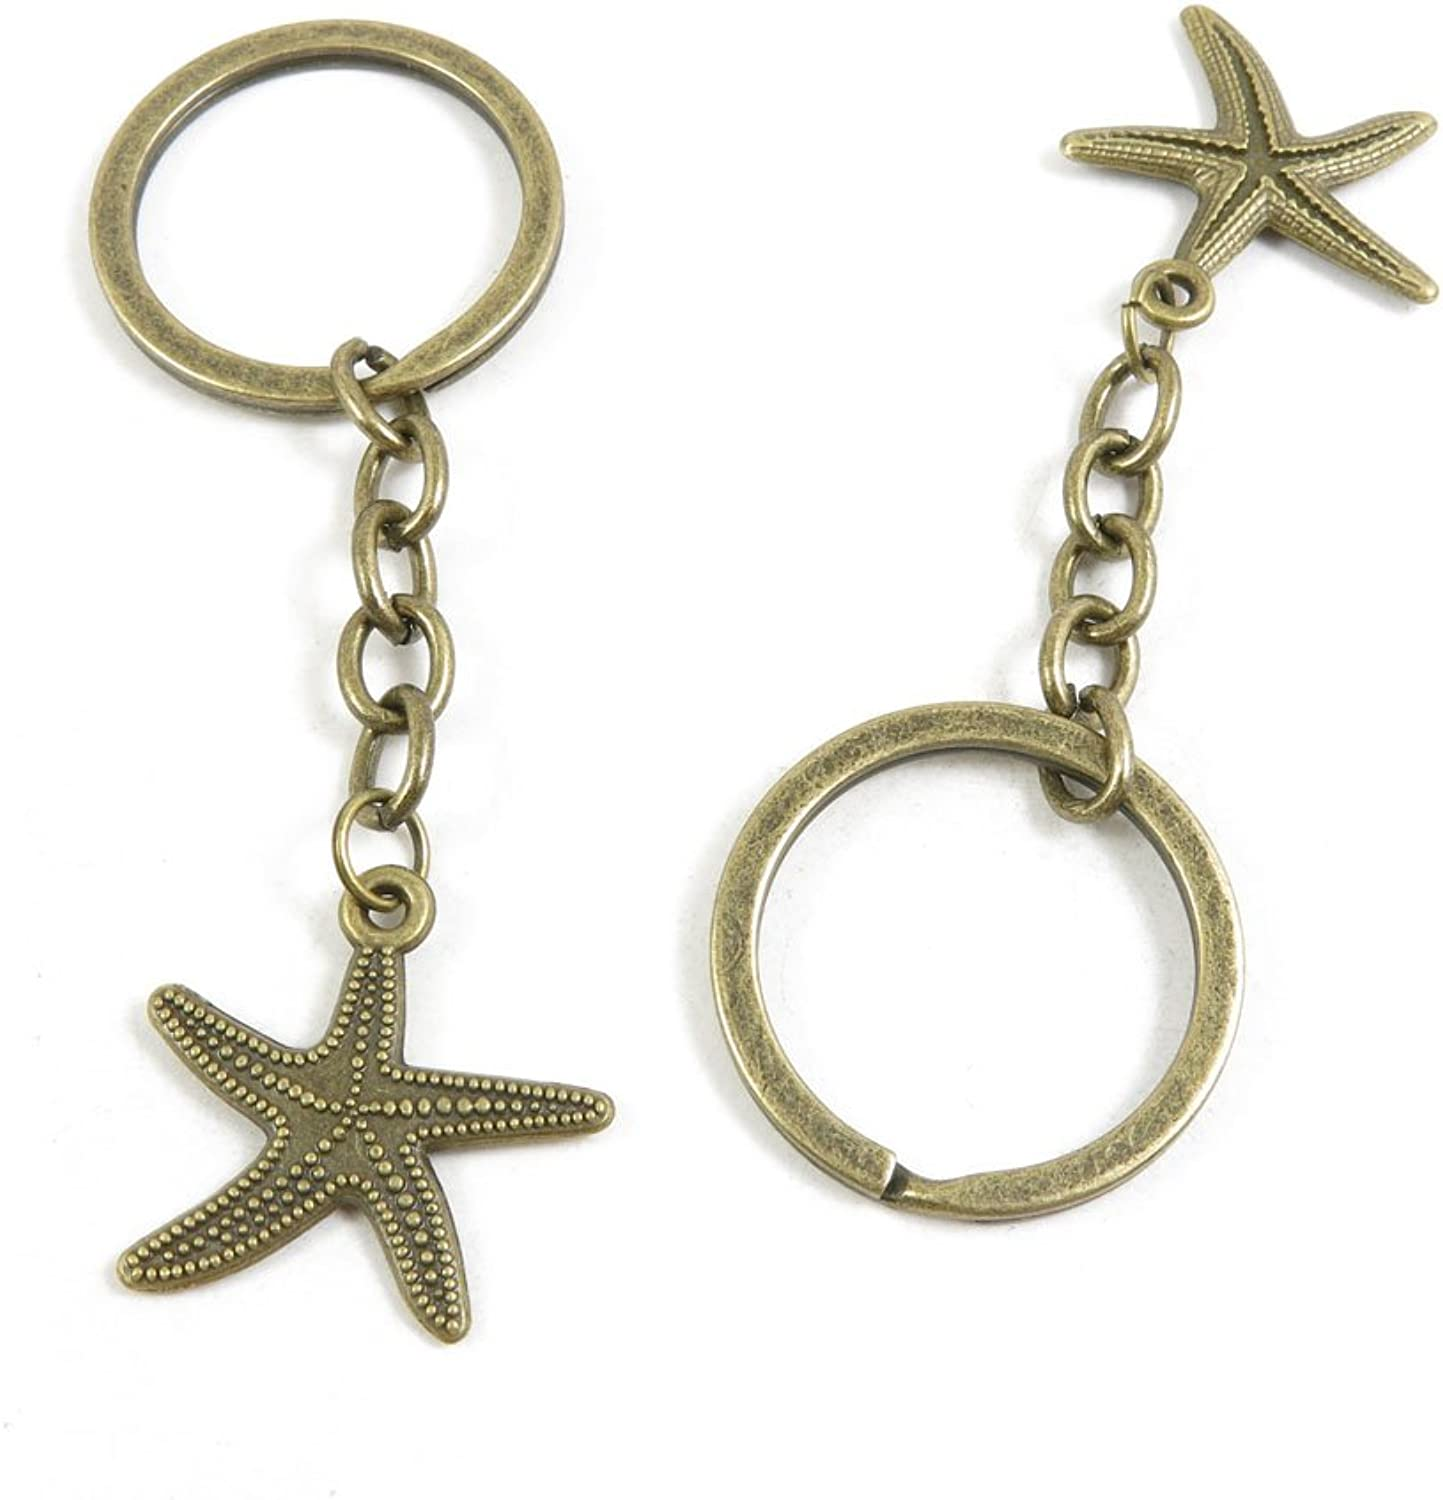 210 Pieces Fashion Jewelry Keyring Keychain Door Car Key Tag Ring Chain Supplier Supply Wholesale Bulk Lots P6MJ7 Starfish Sea Star